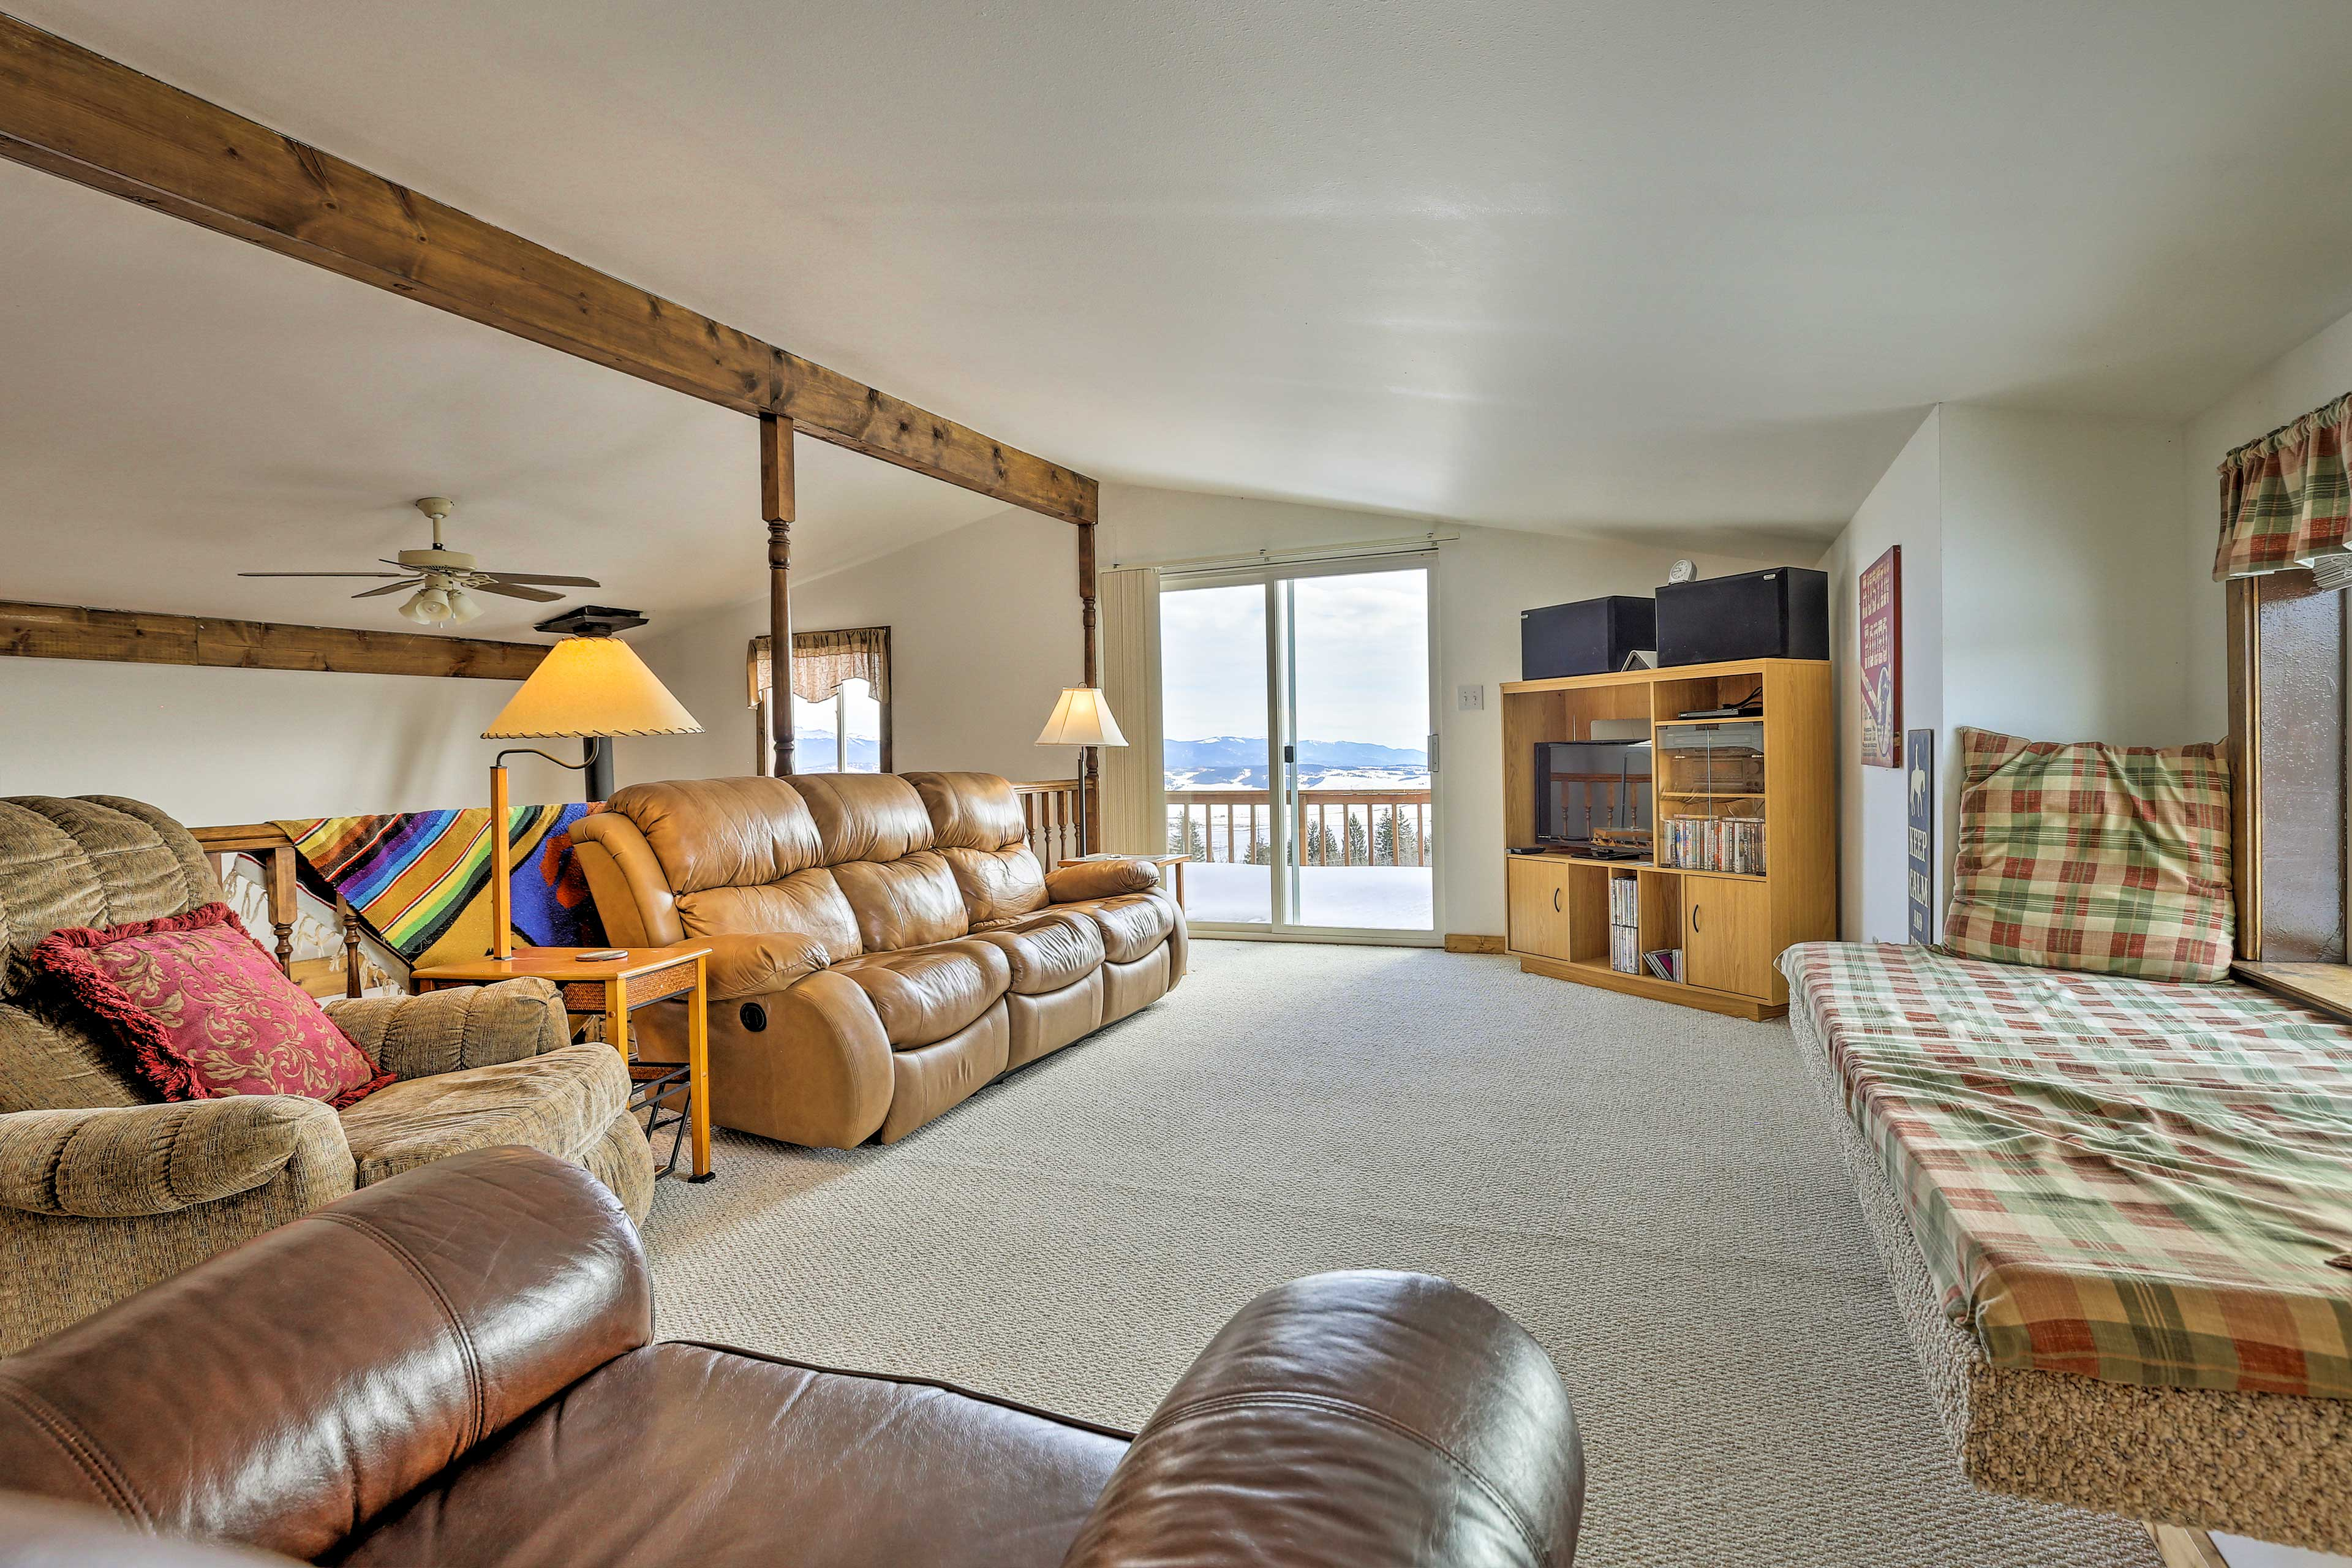 Upstairs, the living room has a flat-screen TV & plenty places to sit!